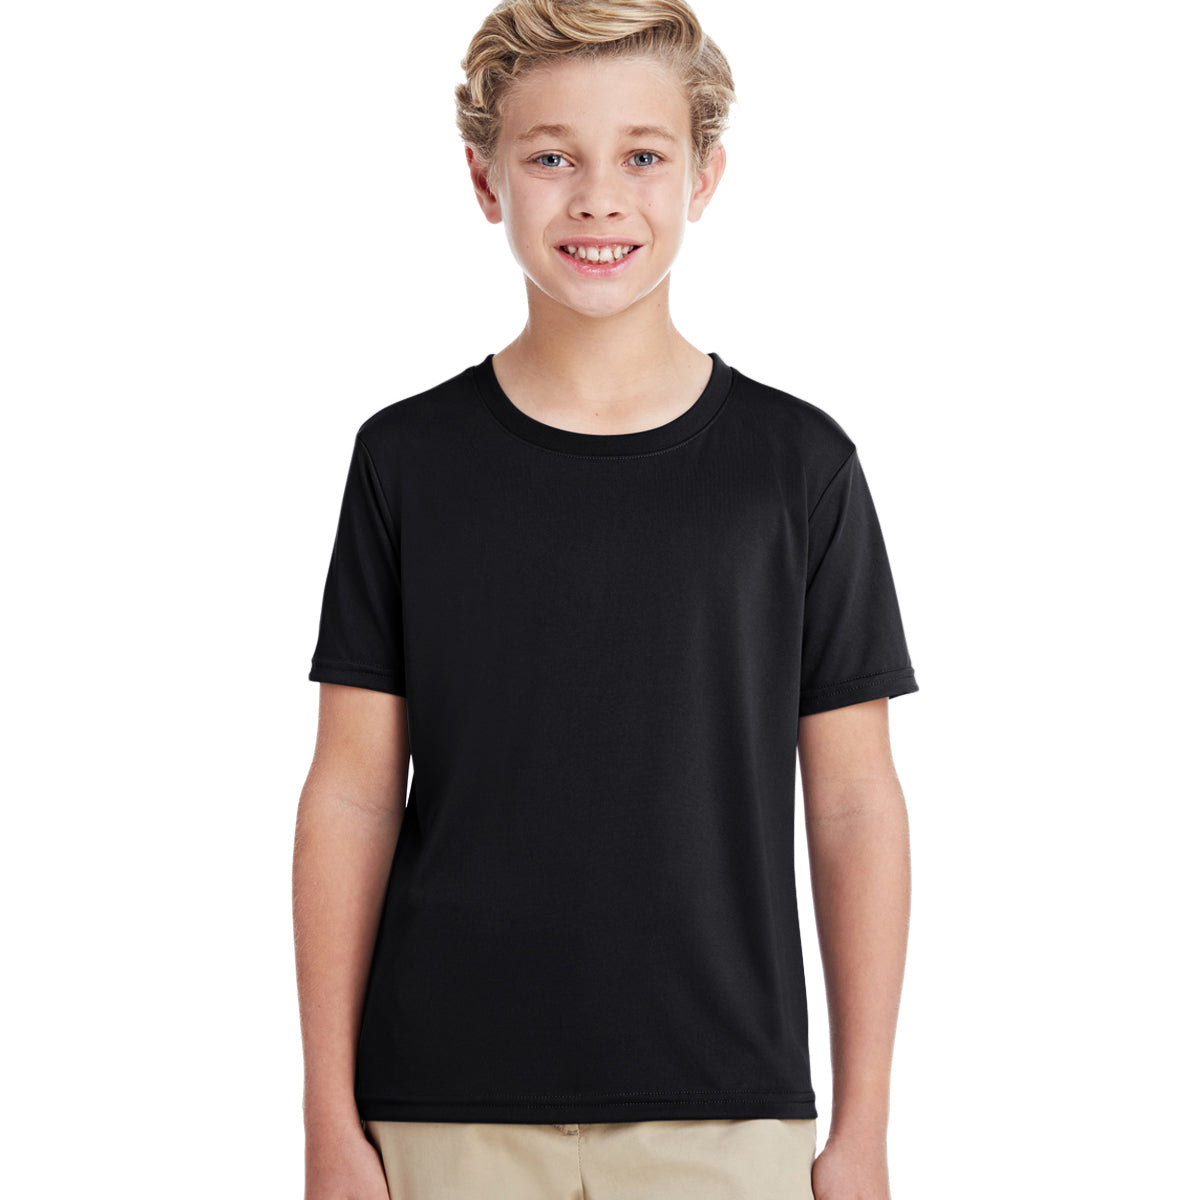 Popular Sport Crew Neck Single Jersey Tee Shirt For Kids-Black-BE12158